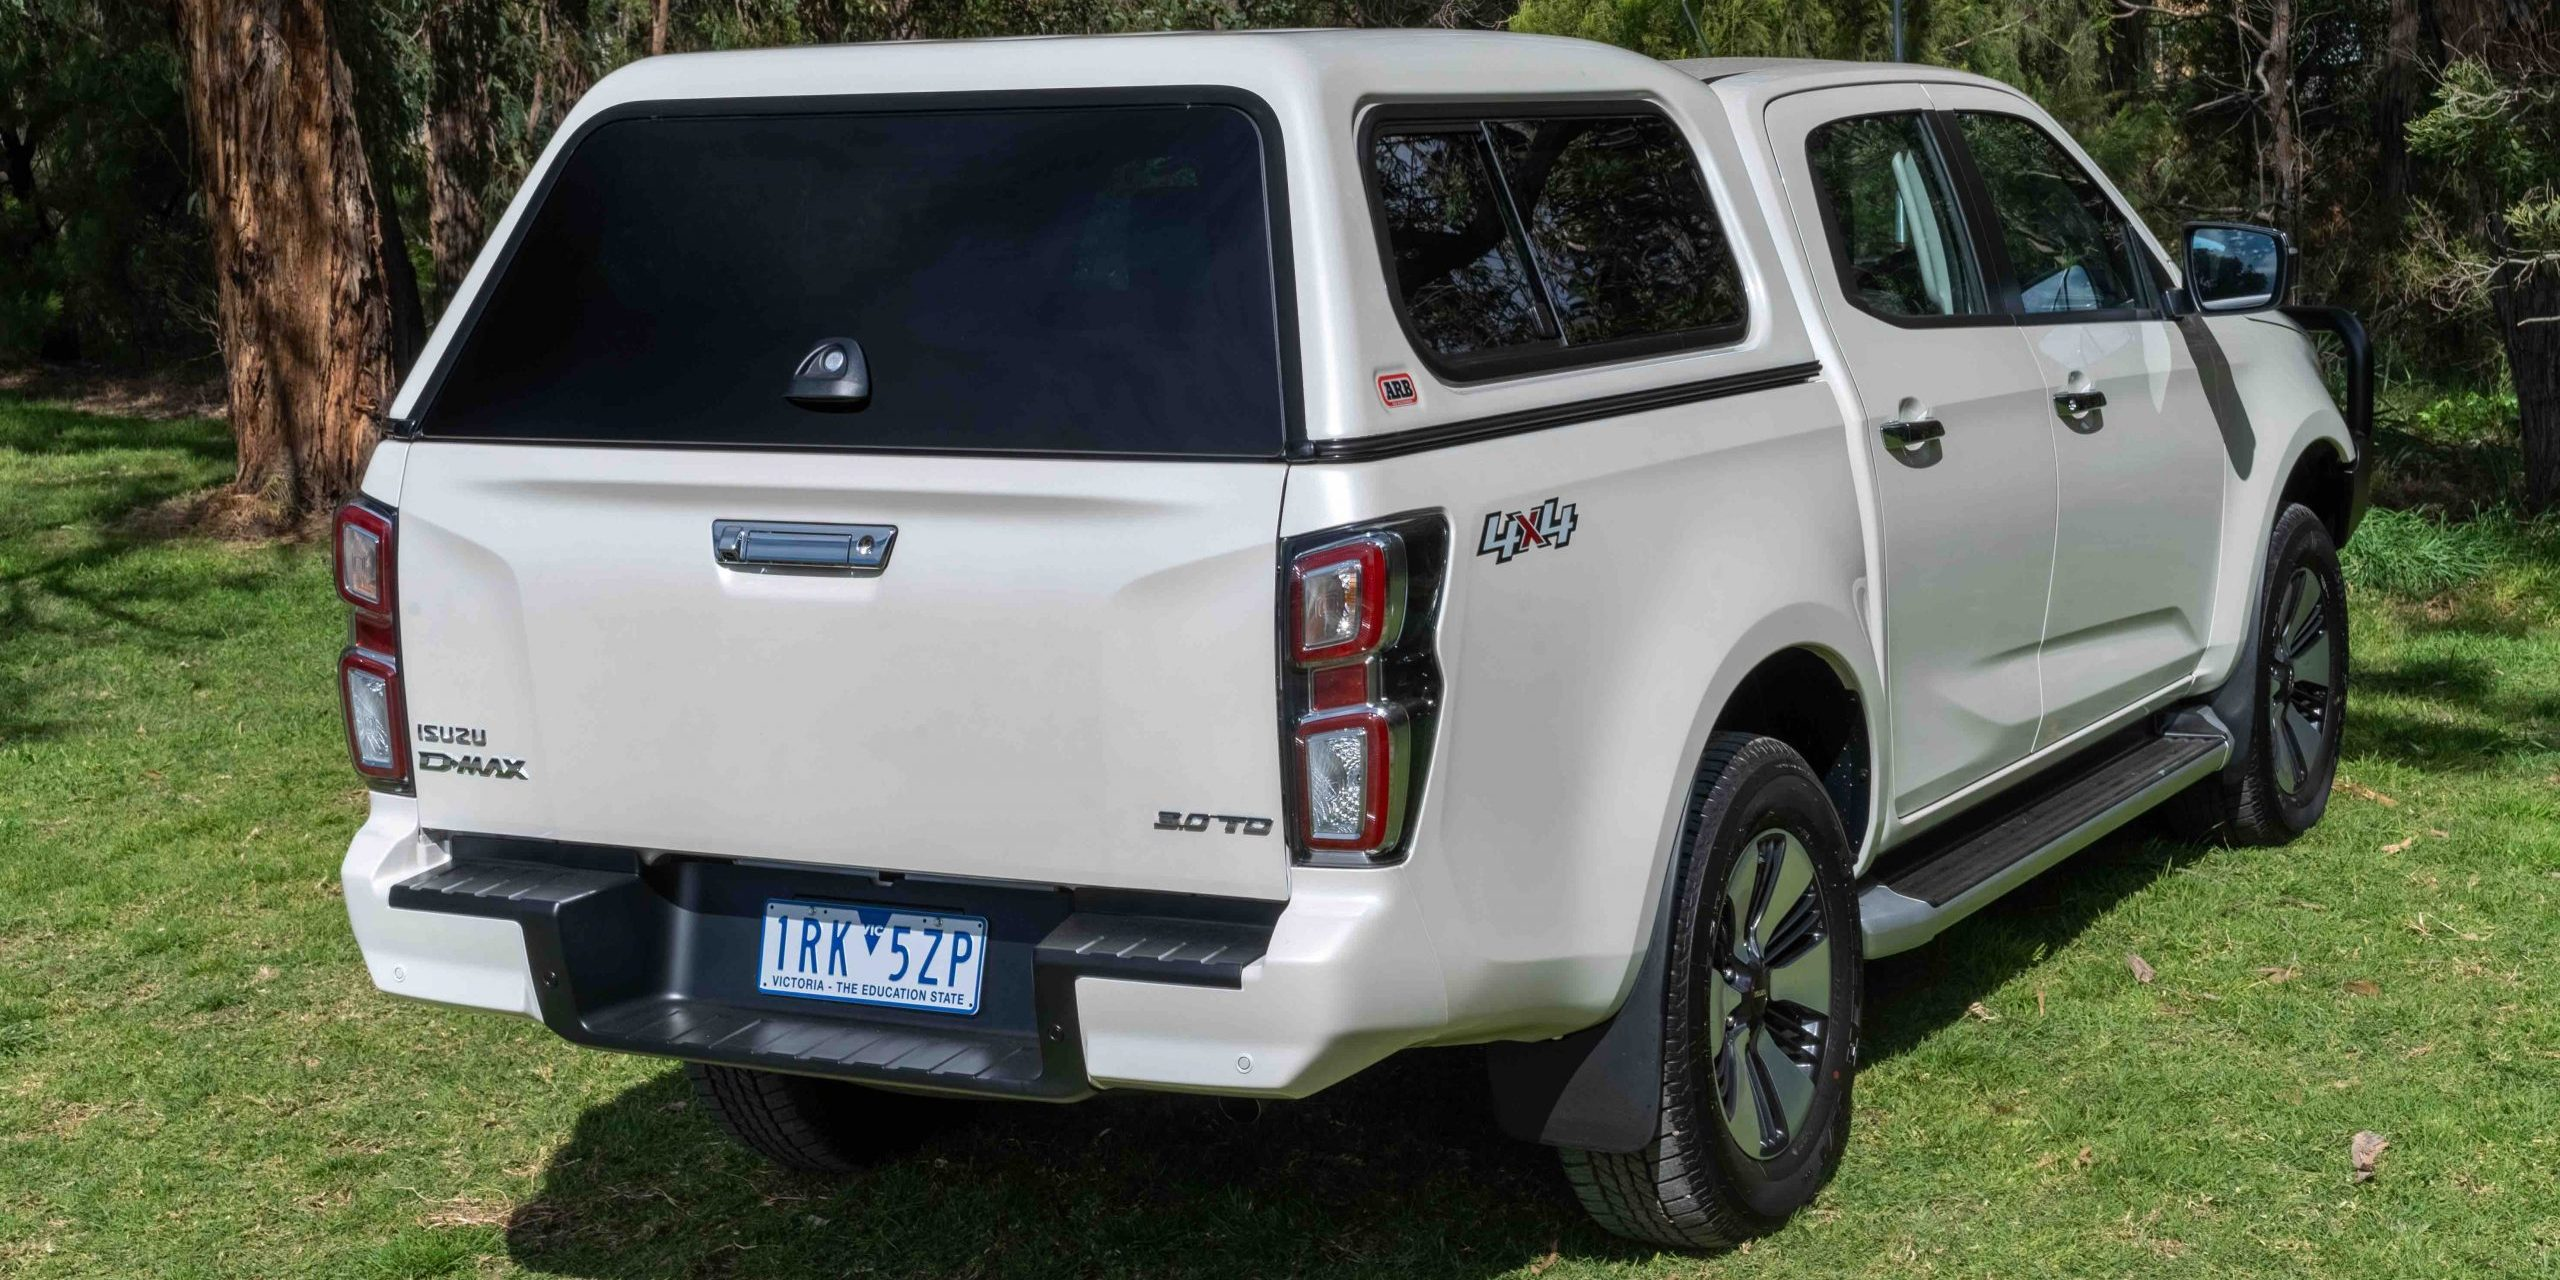 ARB Isuzu D-MAX accessories now available